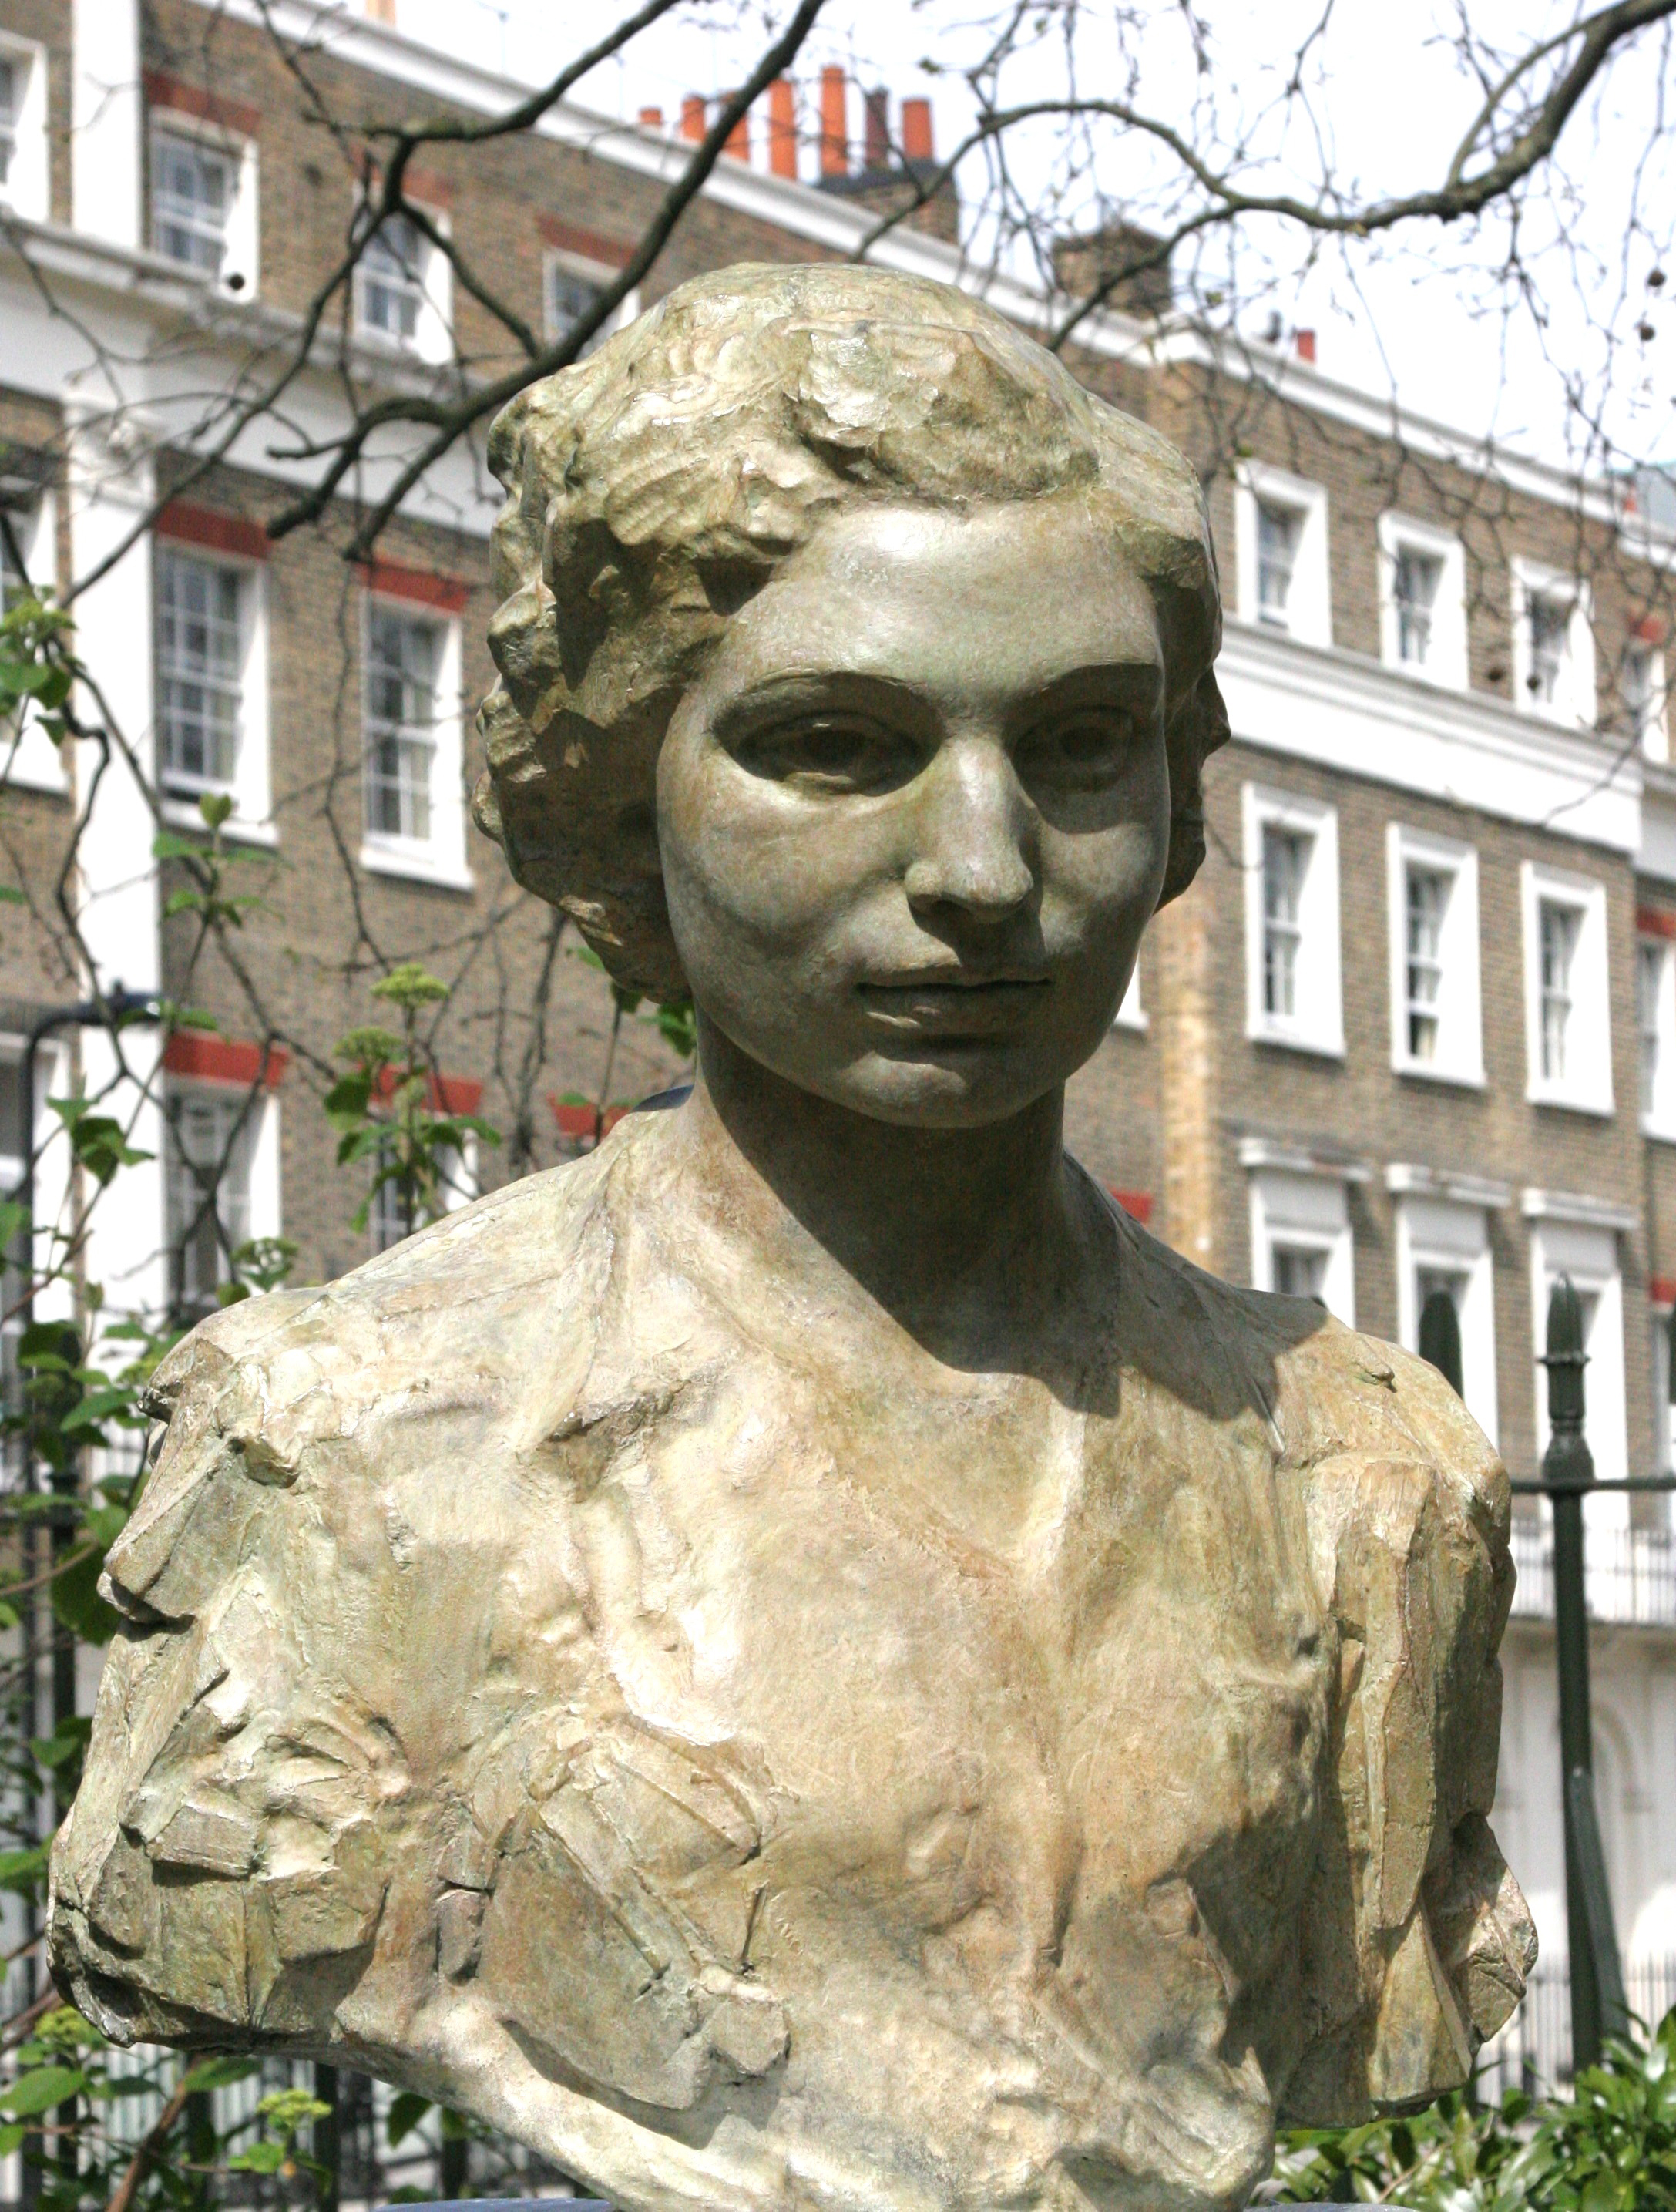 Sculpture of Noor Inayat Khan, GC, Croix de Guerre